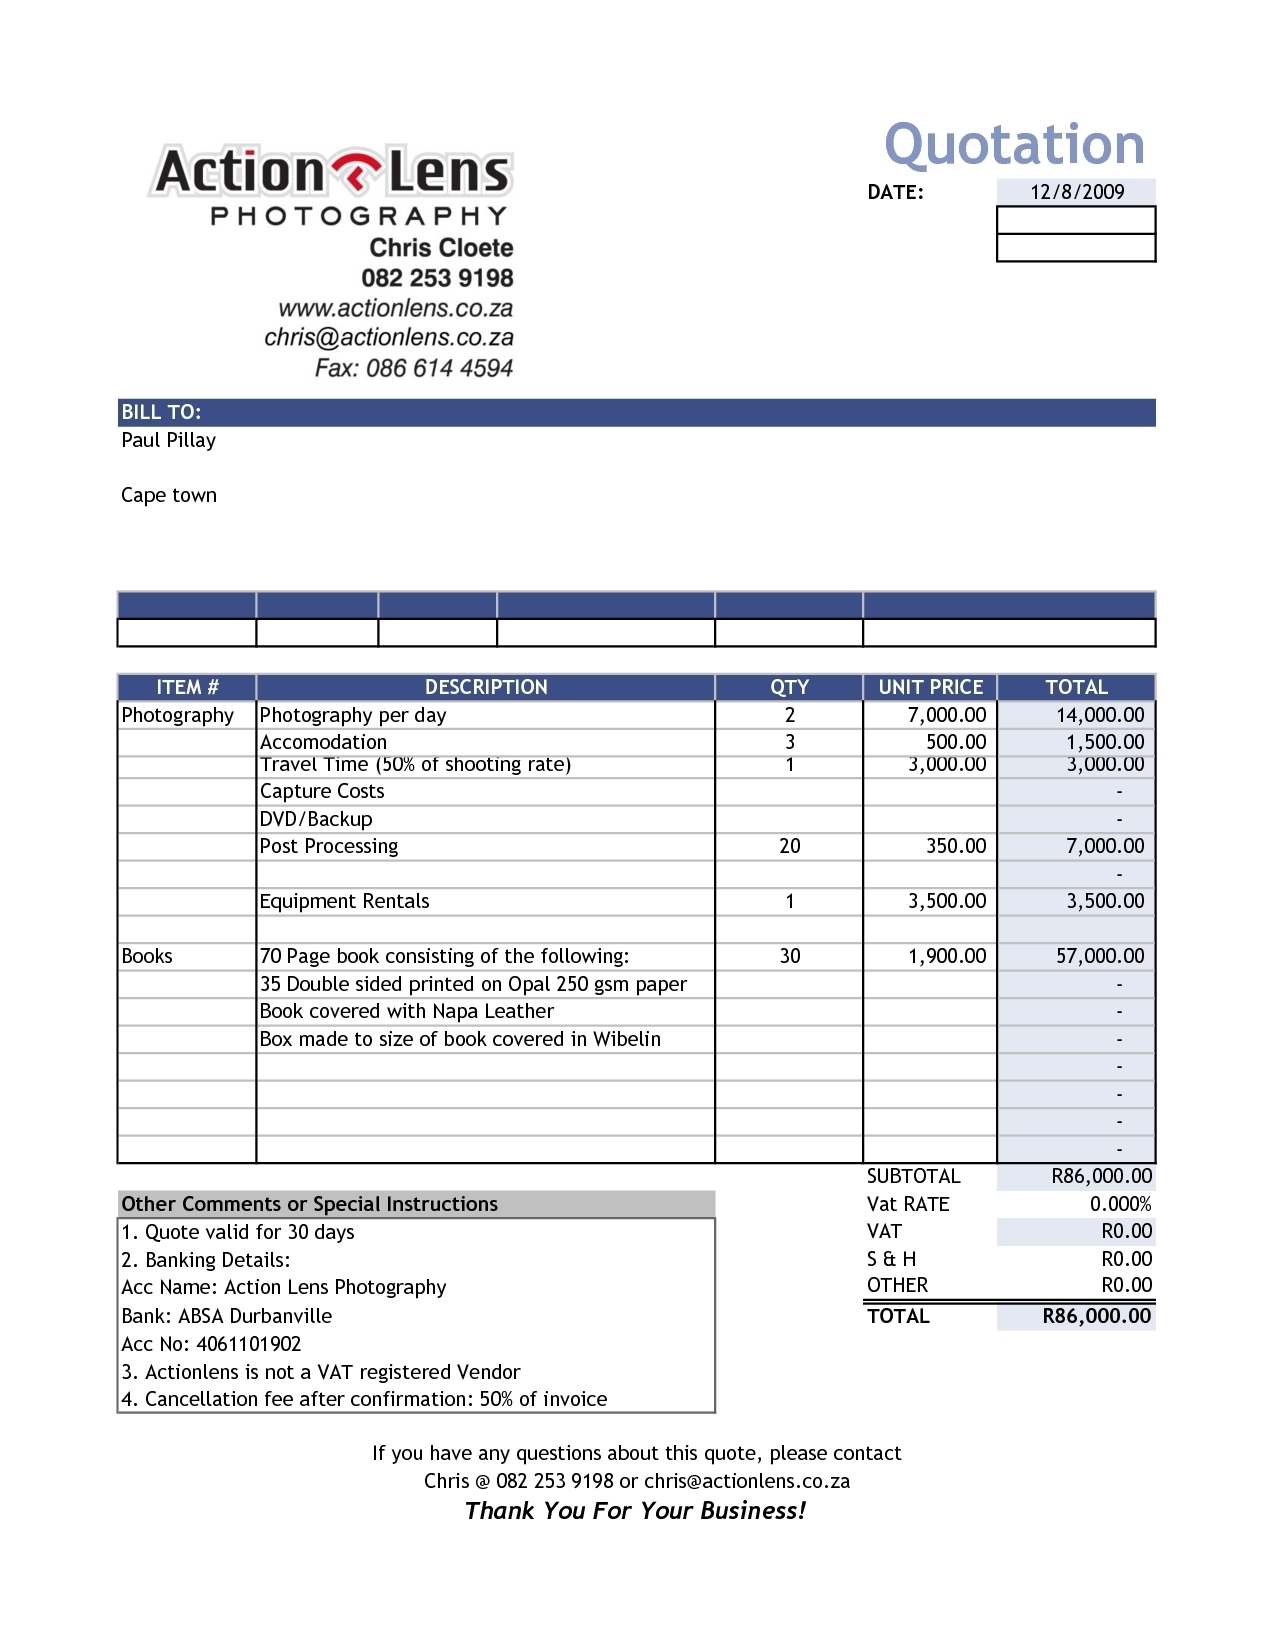 invoice format in excel sheet free download free printable invoice free invoice format